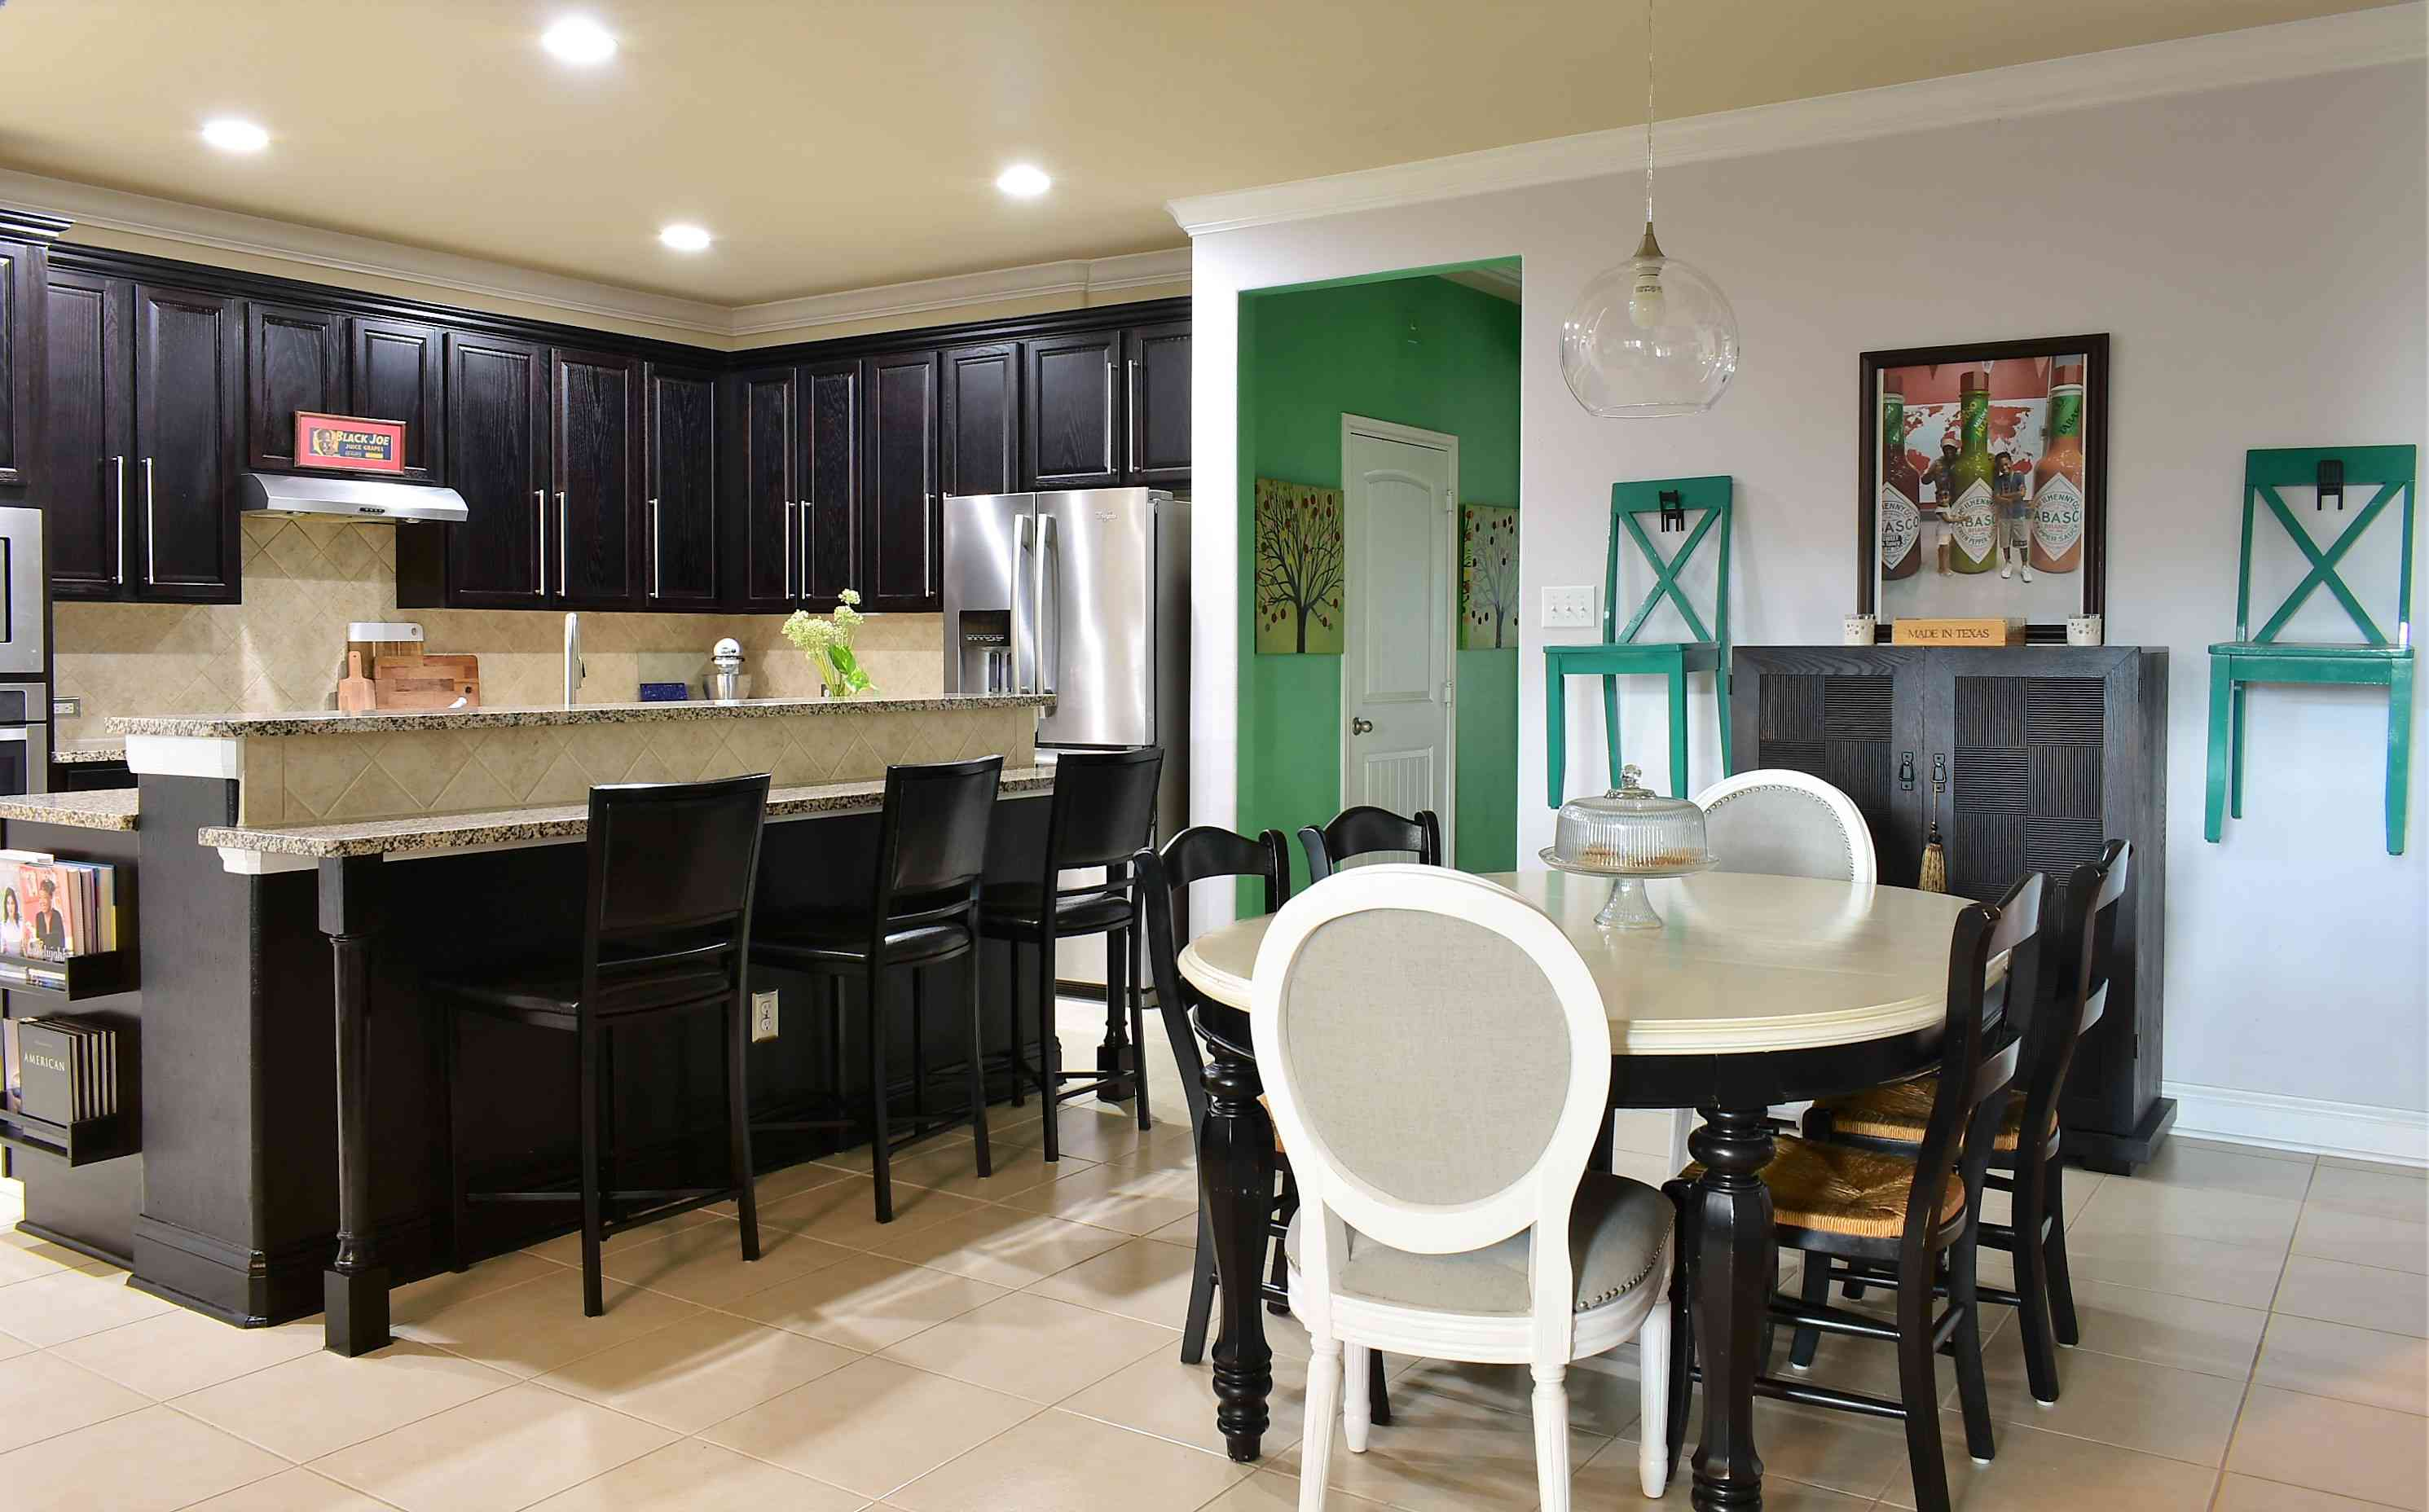 Green accent chairs in kitchen